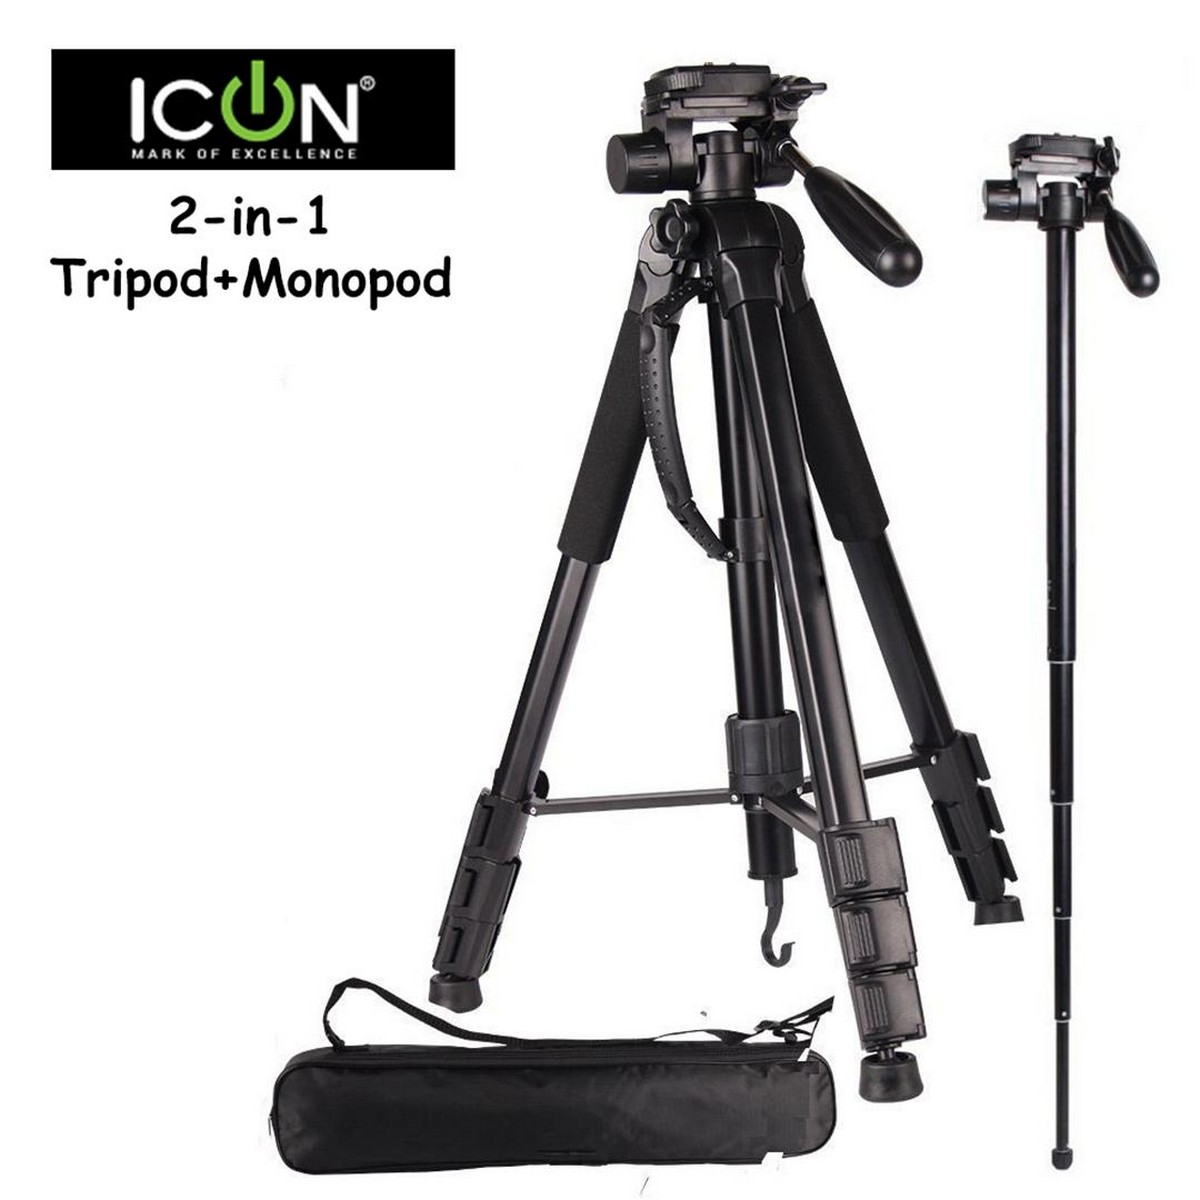 ICON 7863 2-in-1 Tripod + Monopod Compact Professional Tripod (70 Inch Adjustable Height) for DSLR Camera, Digital Cameras, and Camcorder